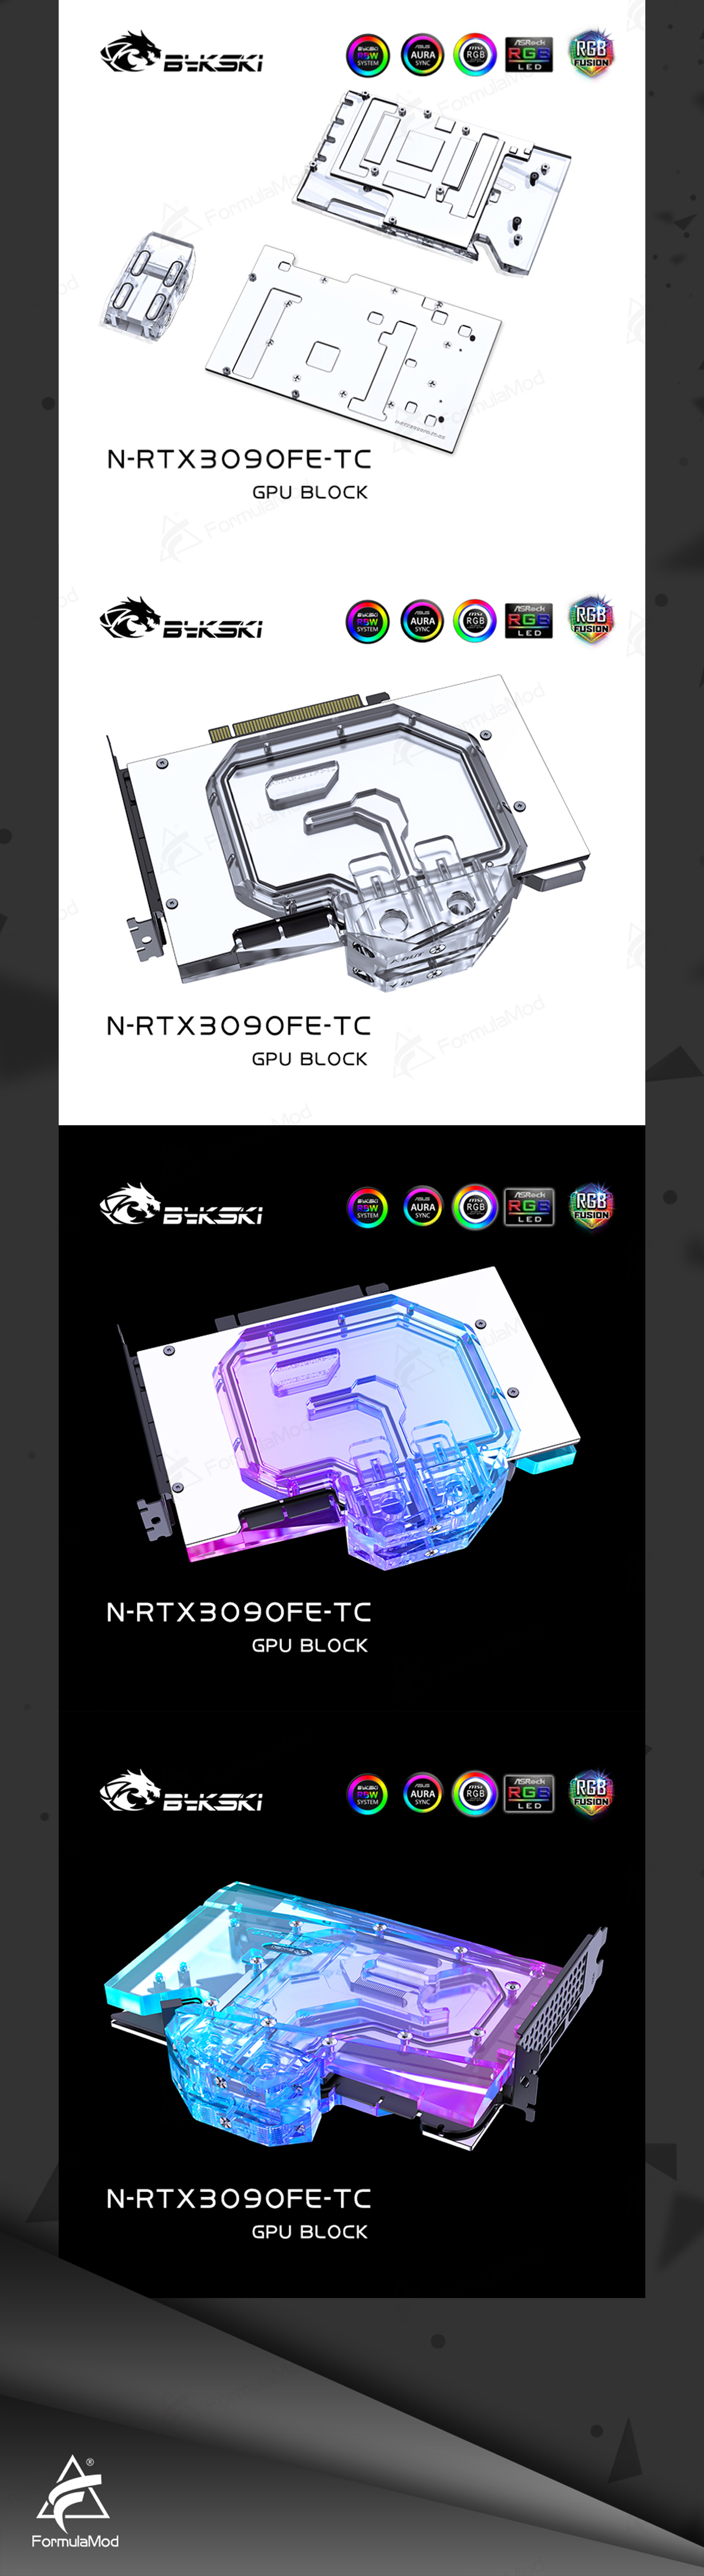 Bykski GPU Block With Active Waterway Backplane Cooler For Nvidia RTX 3090 Founder Edition N-RTX3090FE-TC